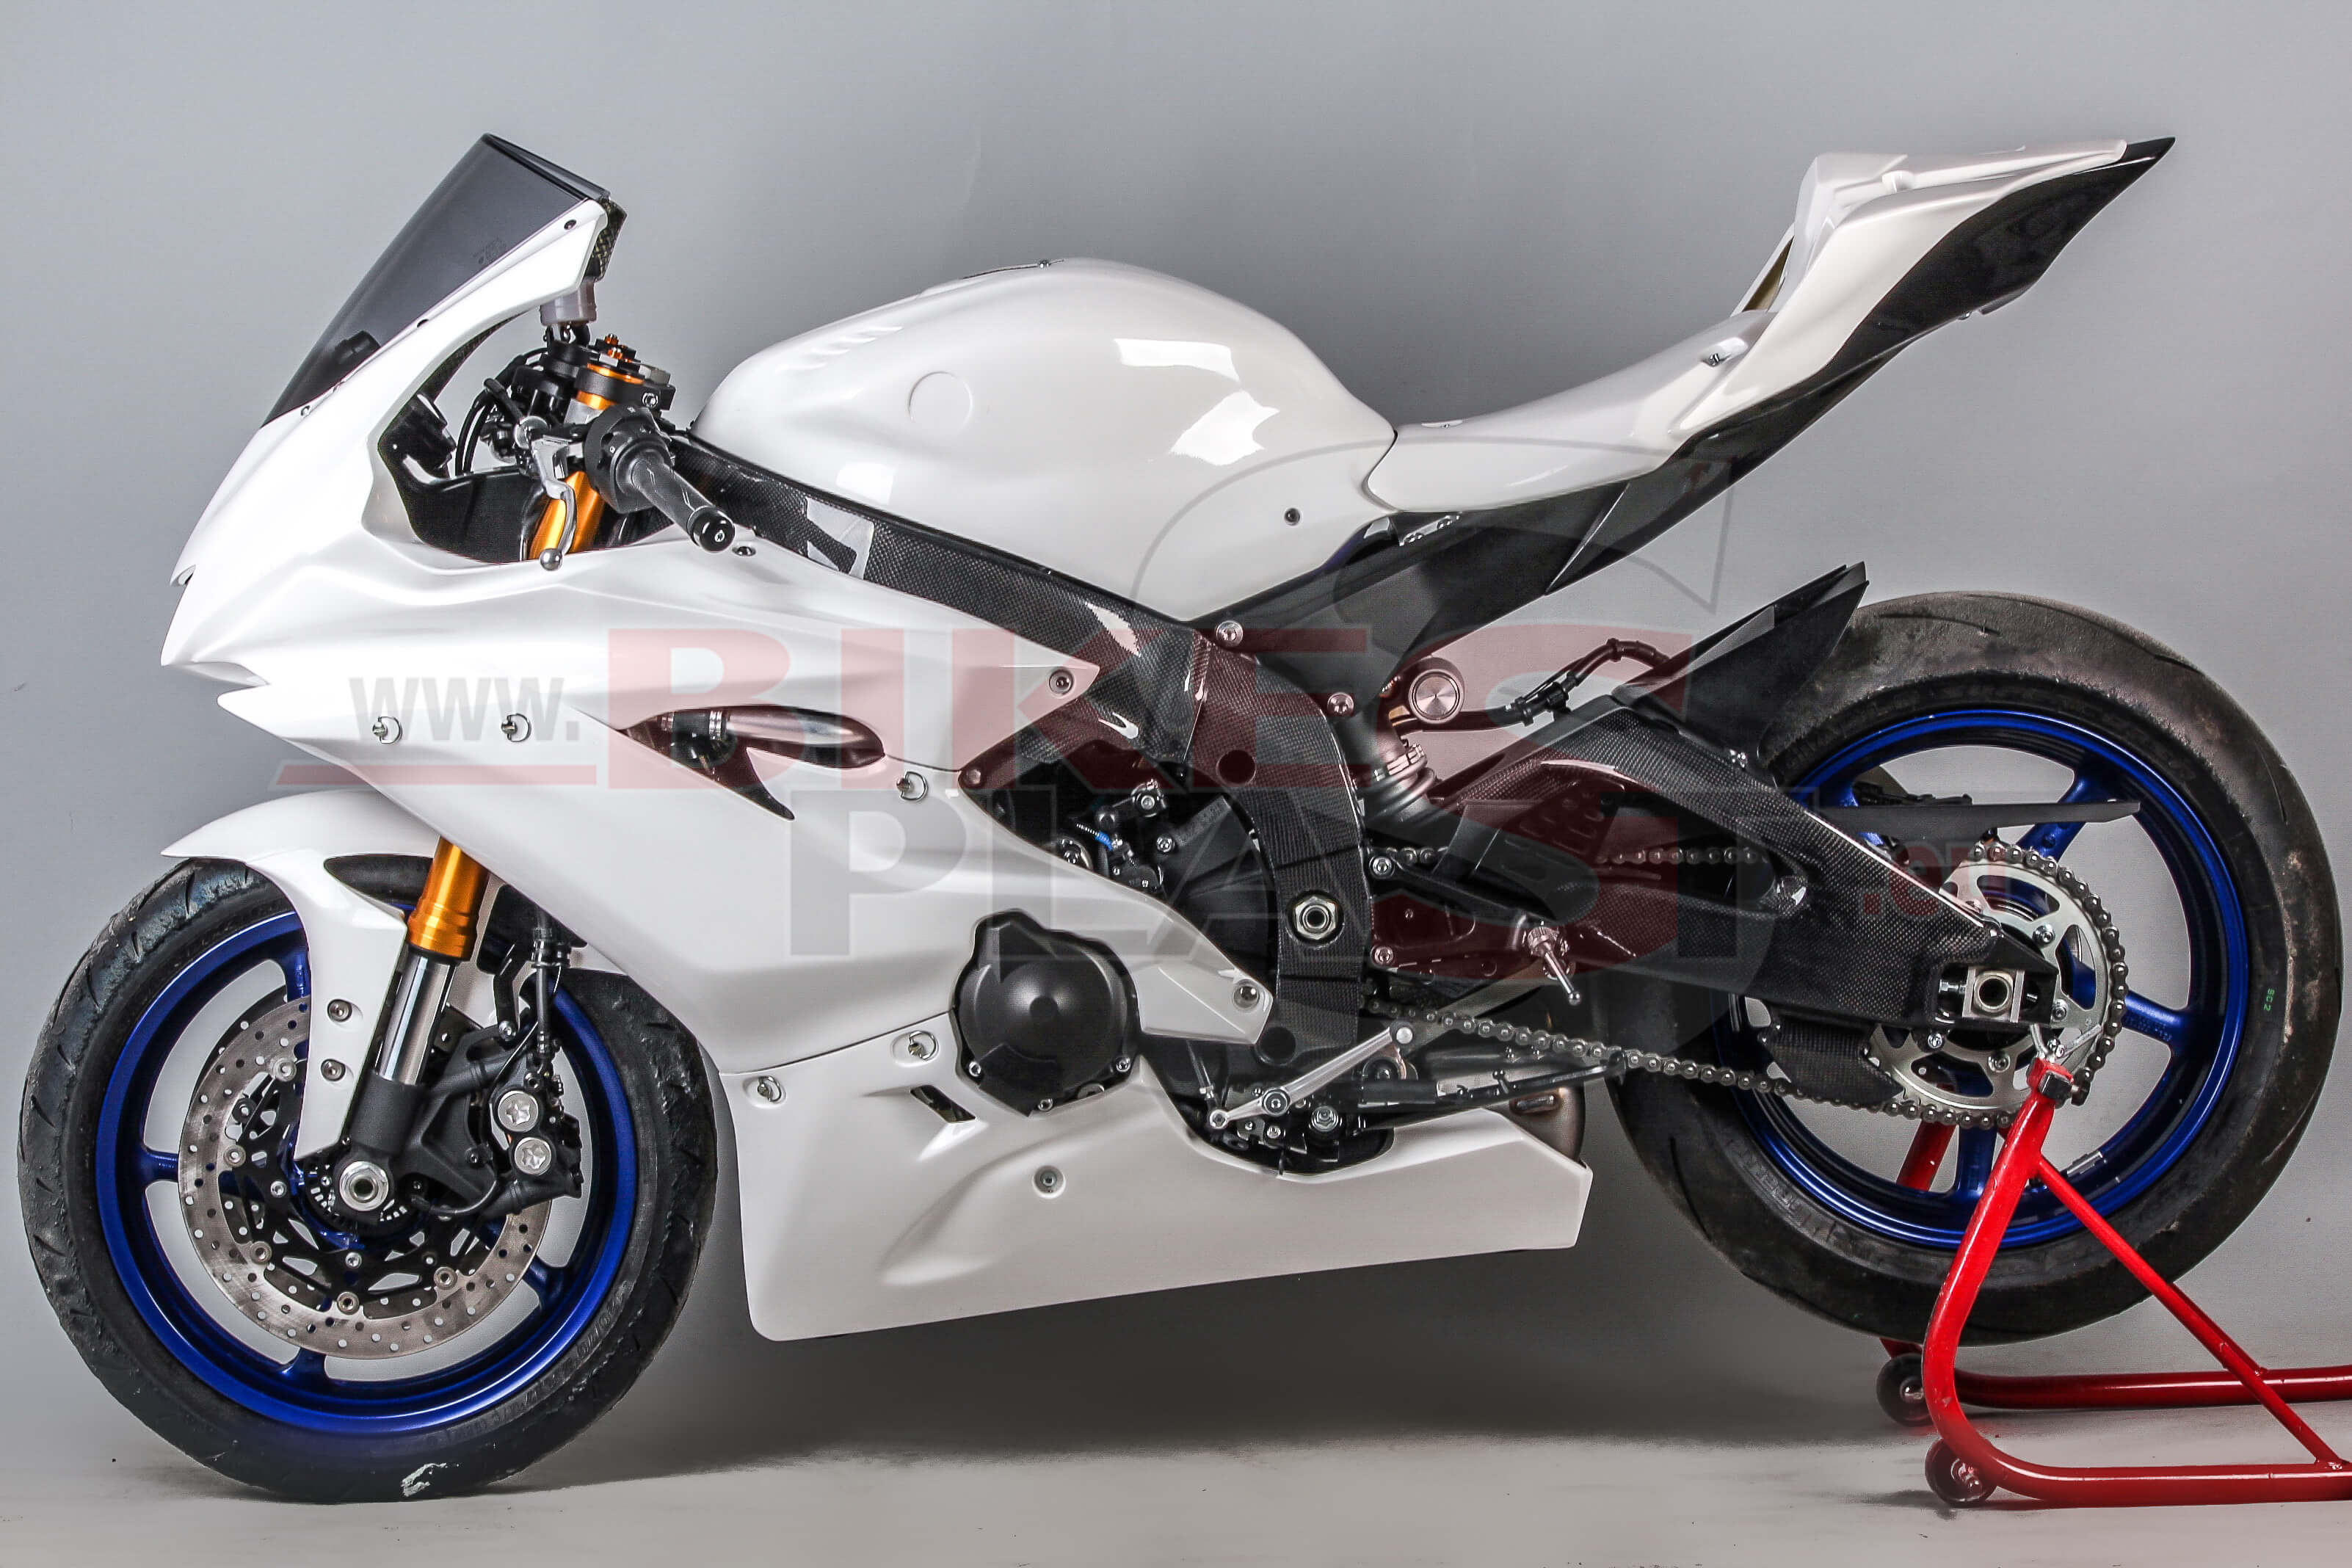 Kit Fairings Yamaha R6 2017 2019 Bikesplastcom